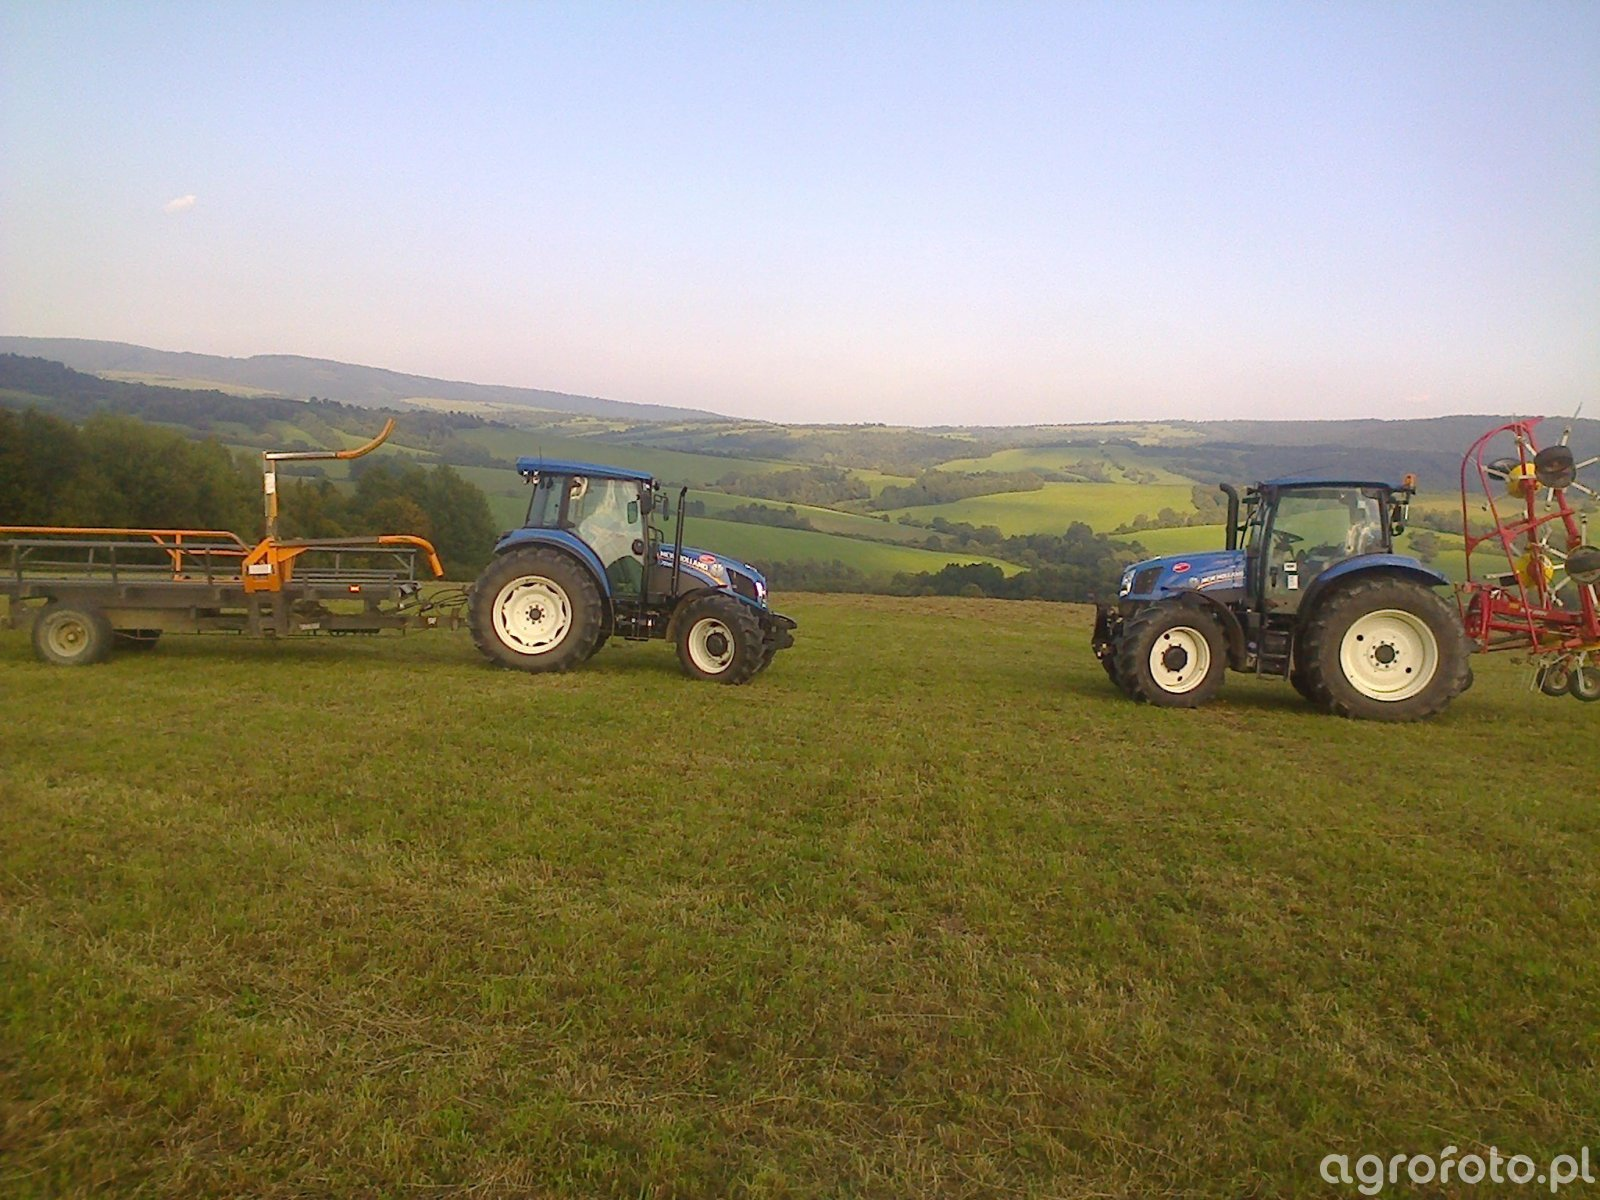 New Holland t6 120 A & New Holland td5 85